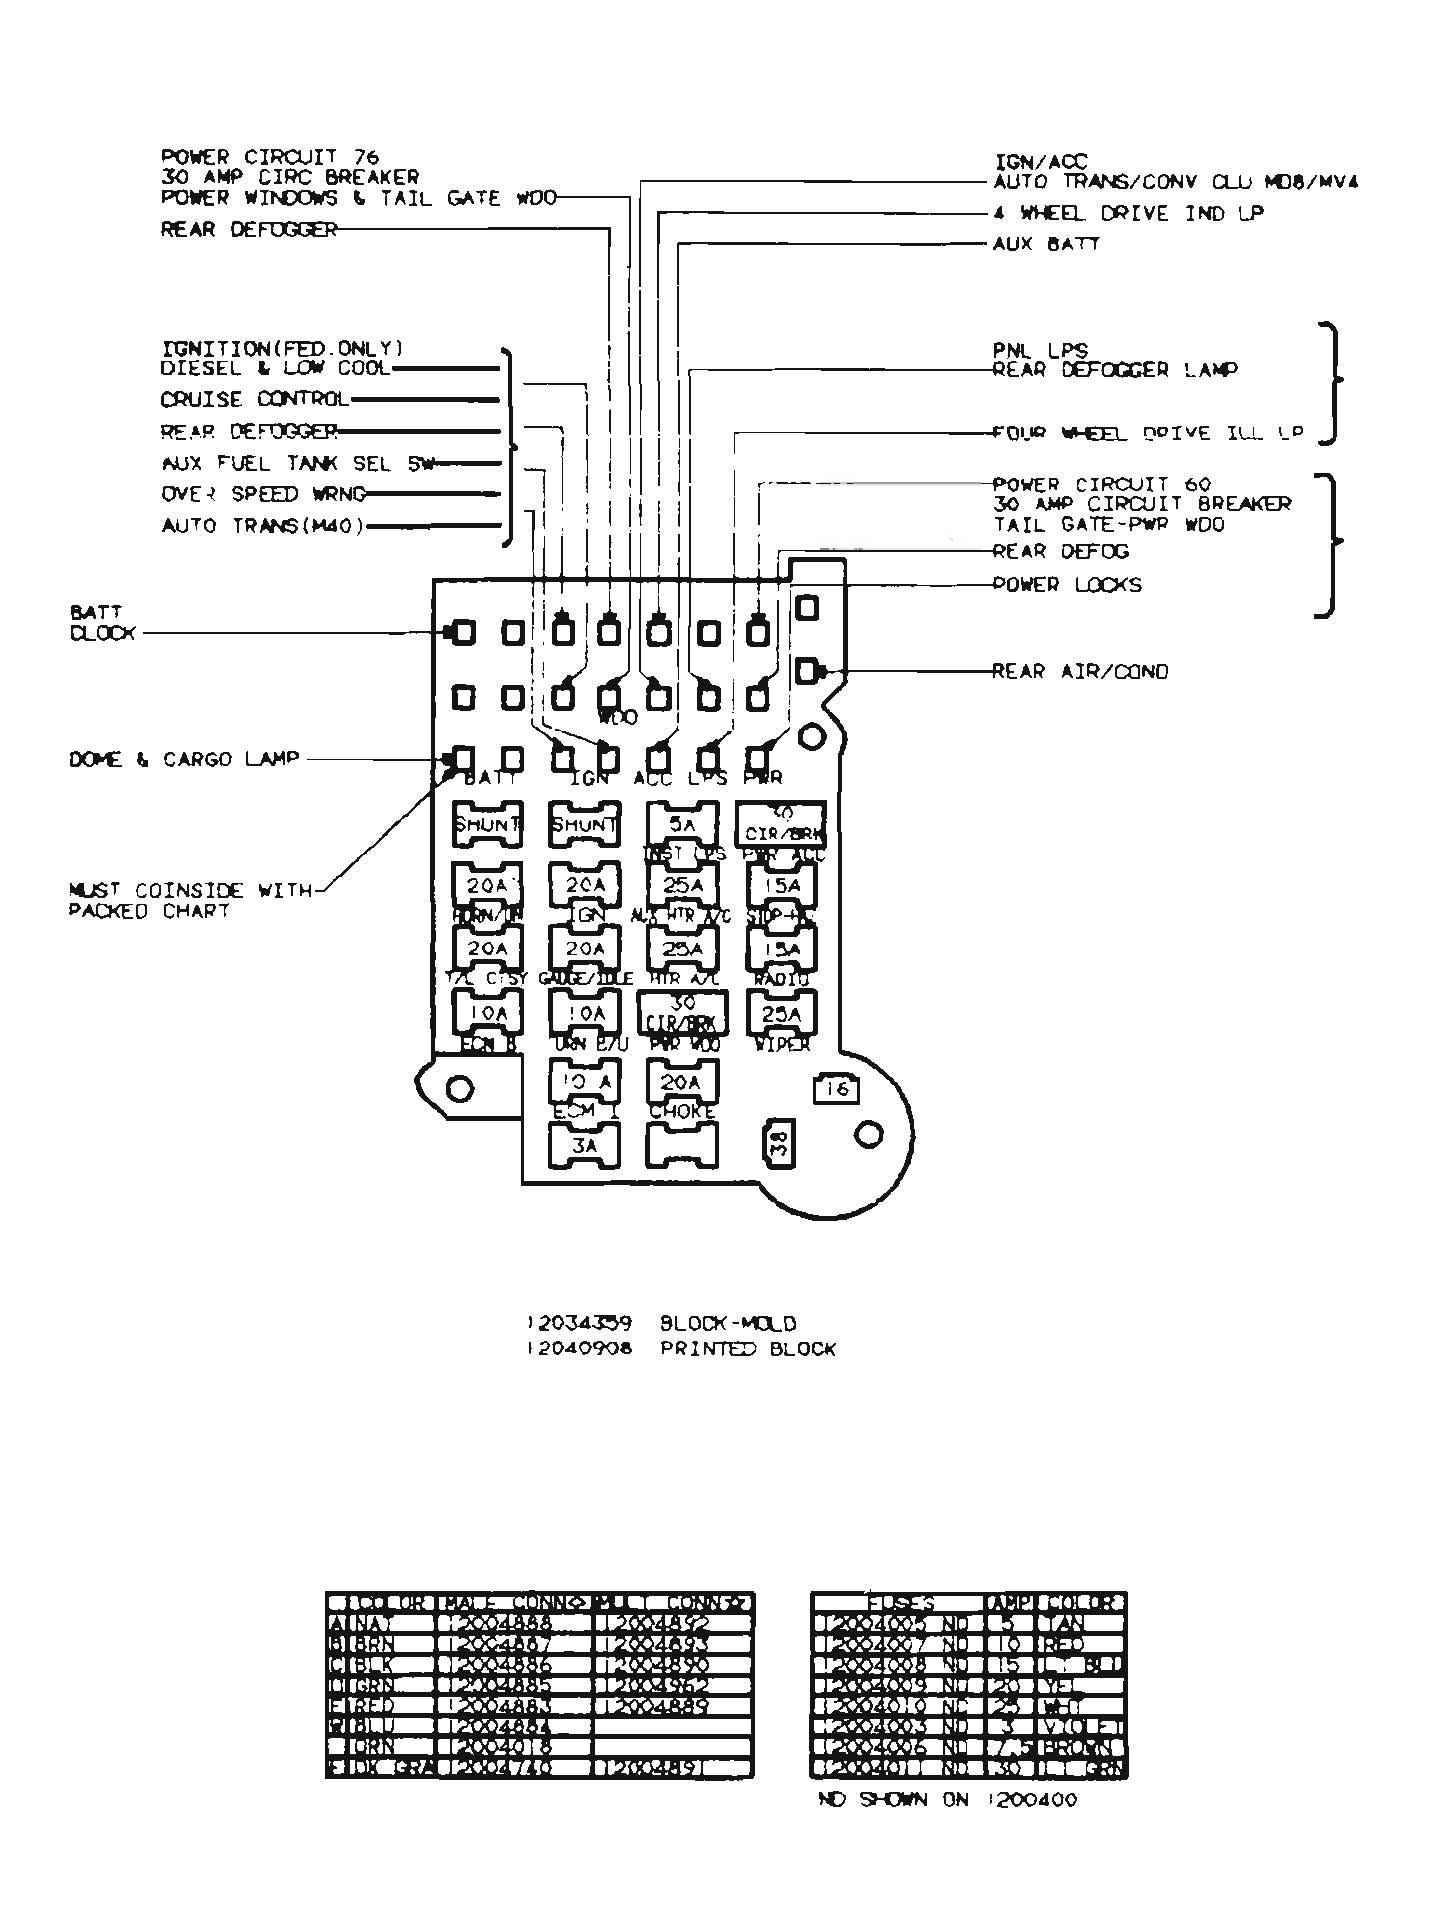 84 c1500 fuse box wiring diagram now84 c1500 fuse box wiring diagram yukon denali fuse box 84 c1500 fuse box